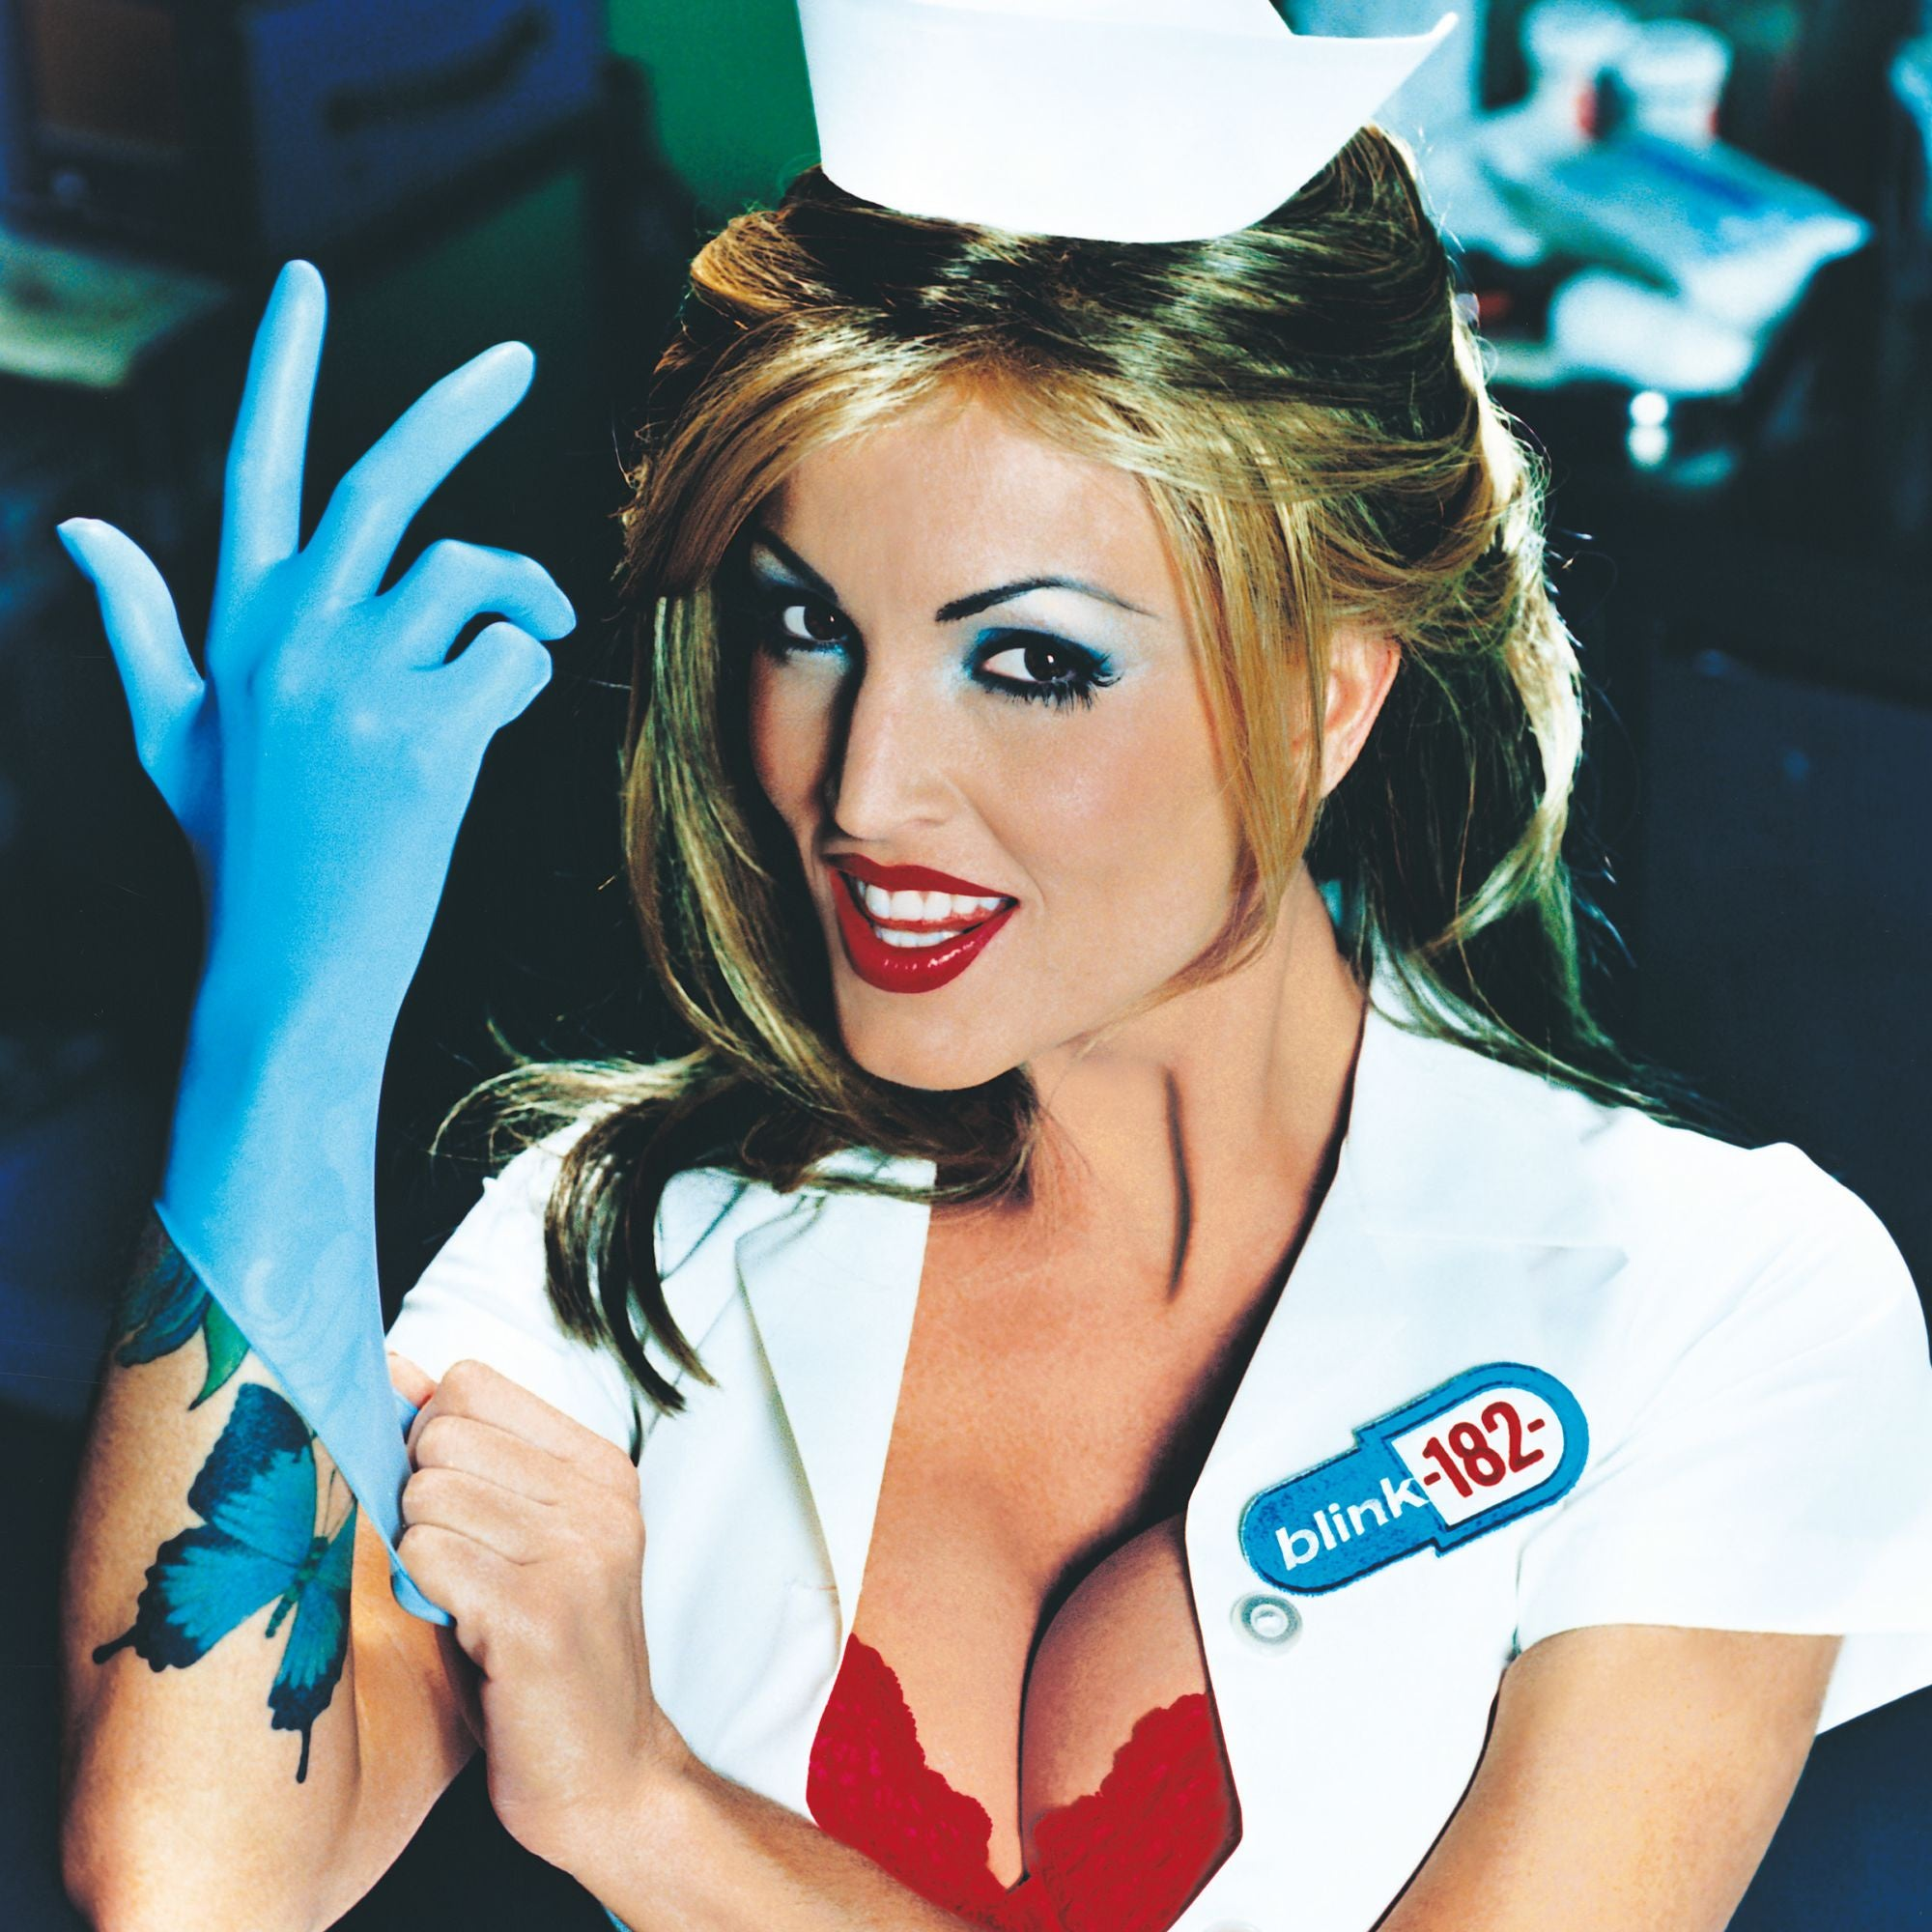 Blink-182 ‎– Enema Of The State (1999) - New Vinyl Lp 2018 SRC 180gram Audiophile Deluxe Reissue on Blue Vinyl with 28-Page Booklet and Gatefold Jacket (Limited to 1500!) - Alt / Pop Punk